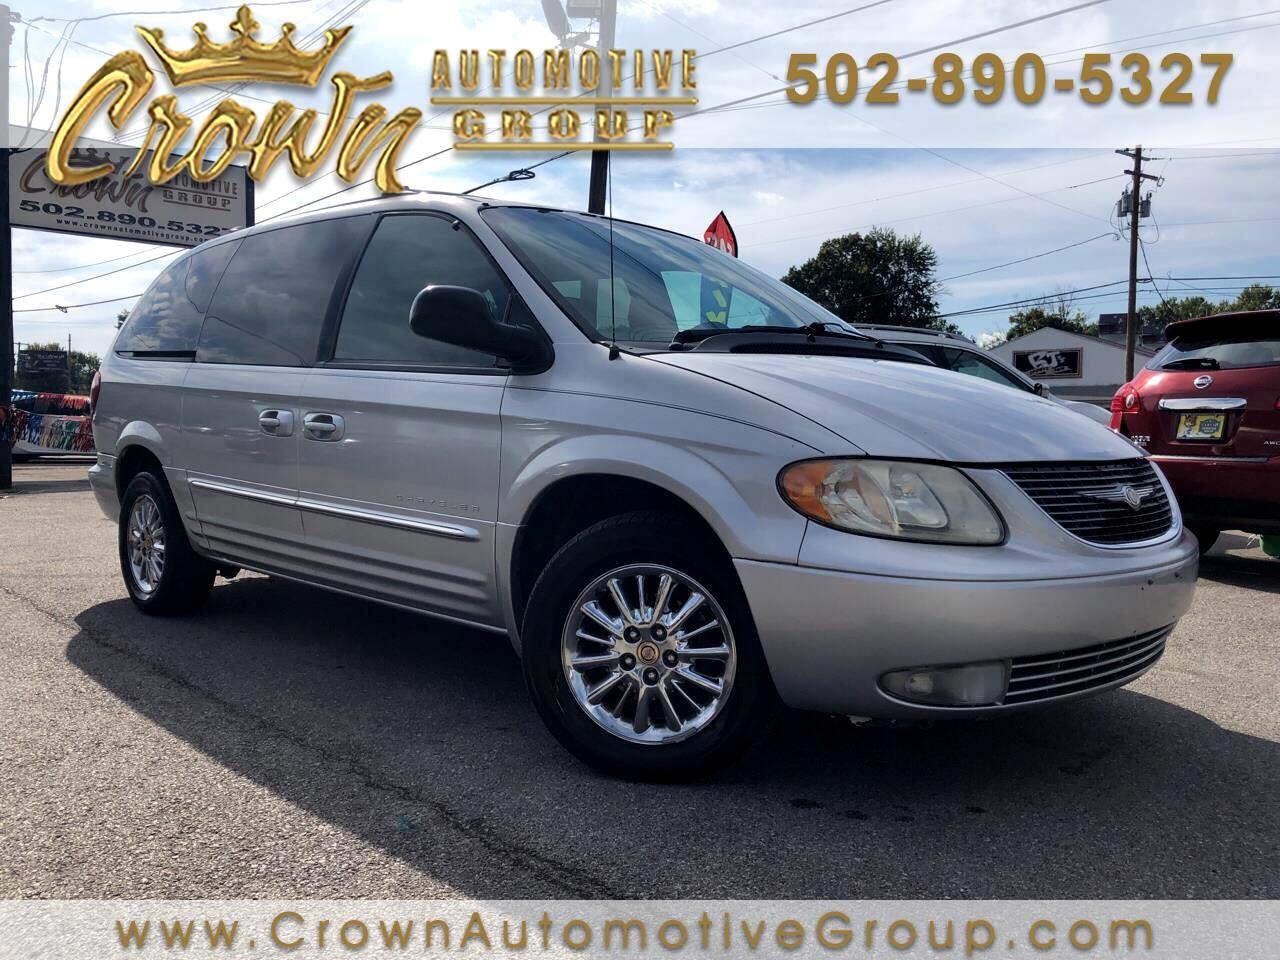 2001 Chrysler Town & Country 4dr Limited FWD